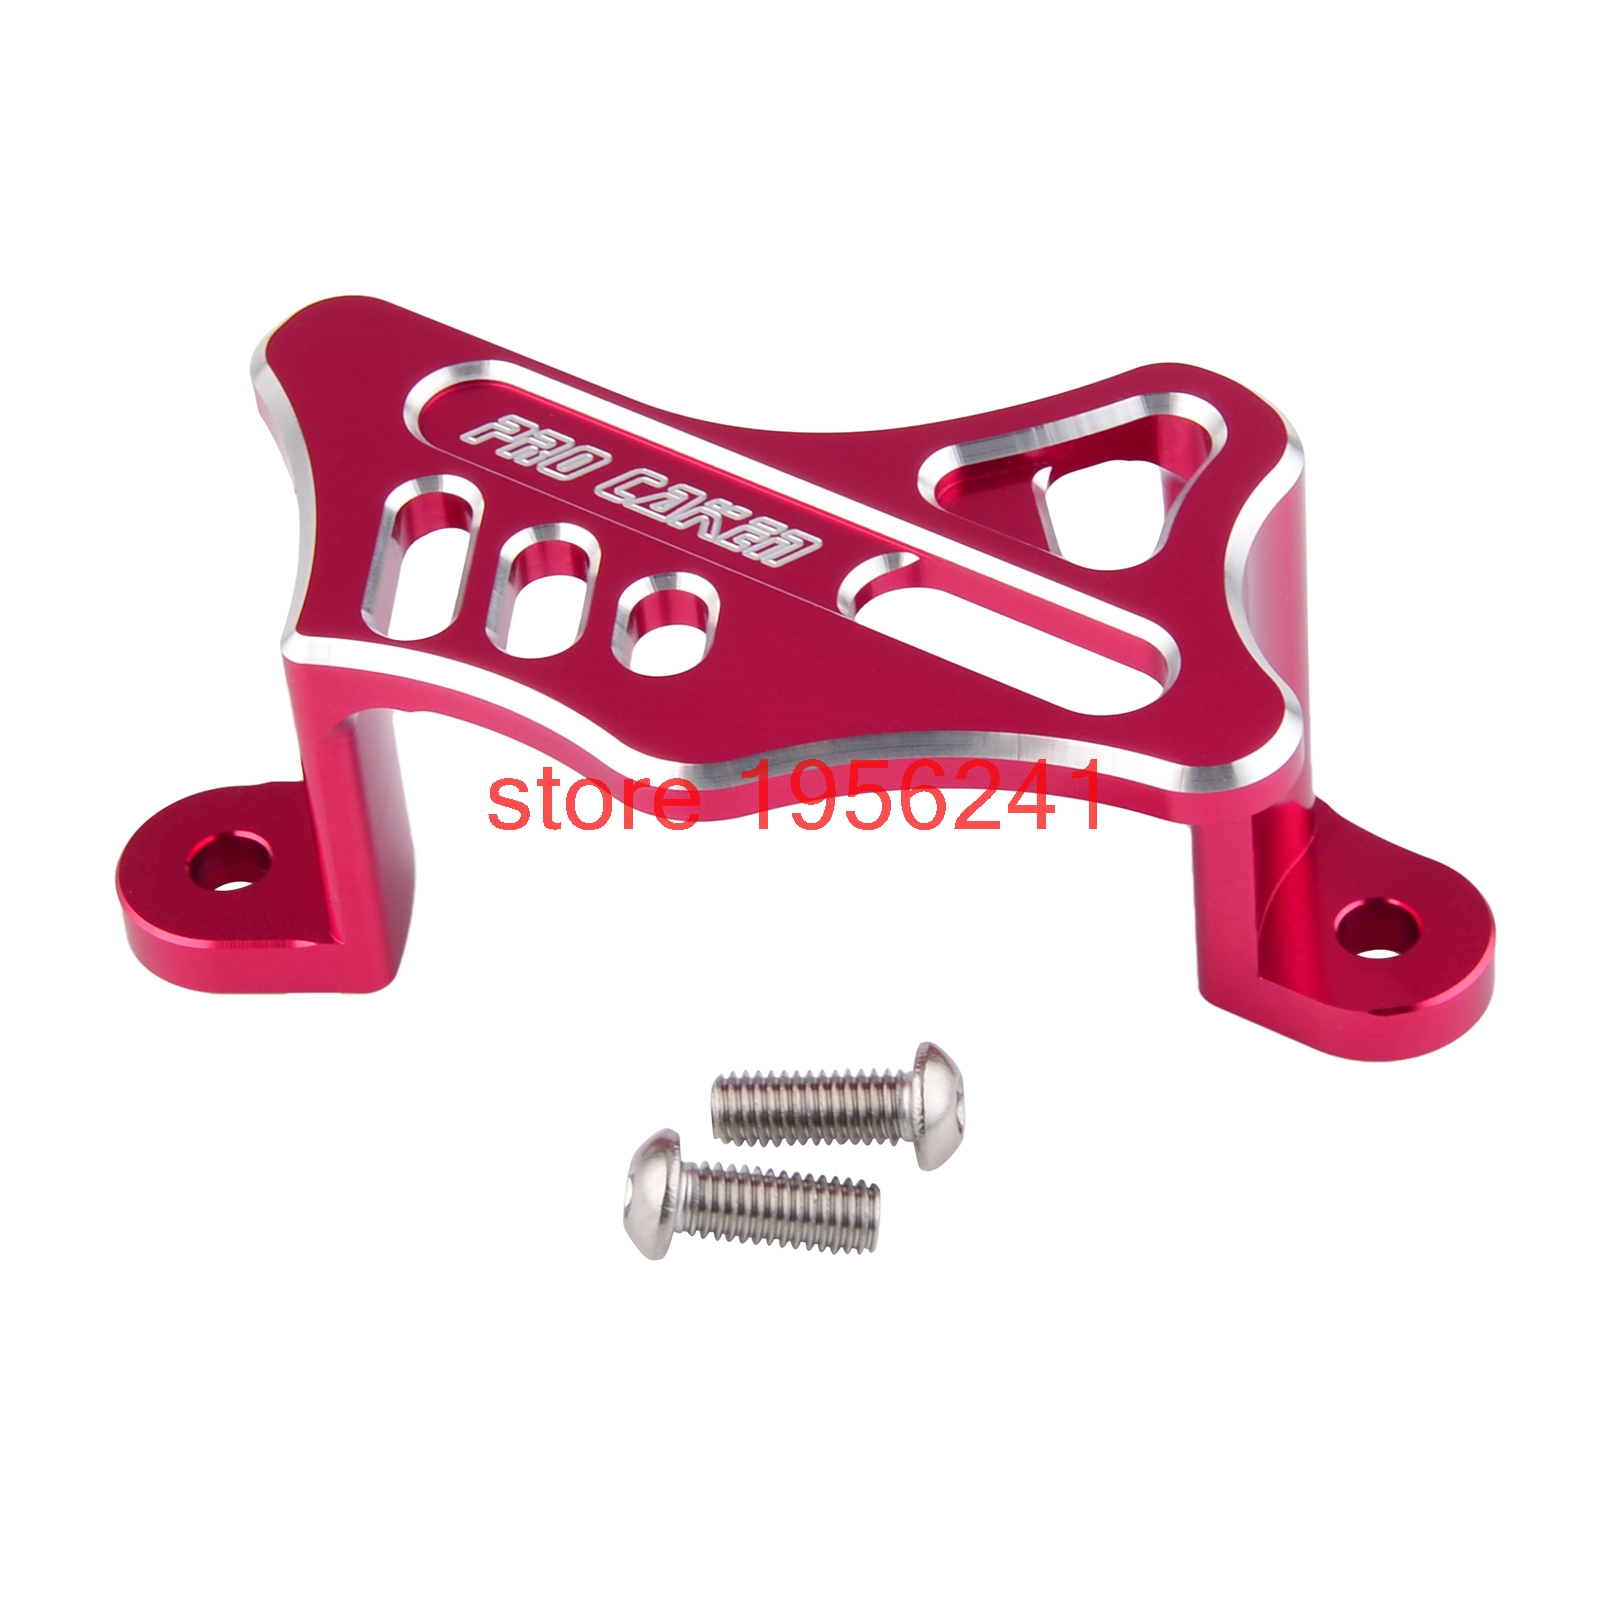 Rear Brake Caliper Guard Protector For Honda CR125R CR250R CRF150R CRF250R CRF450R CRF450RX CRF450X 7 8 lever brake clutch master cylinder set reservoir for honda crf150r crf250x crf250r crf450r crf450x crf230f sl230 xr250